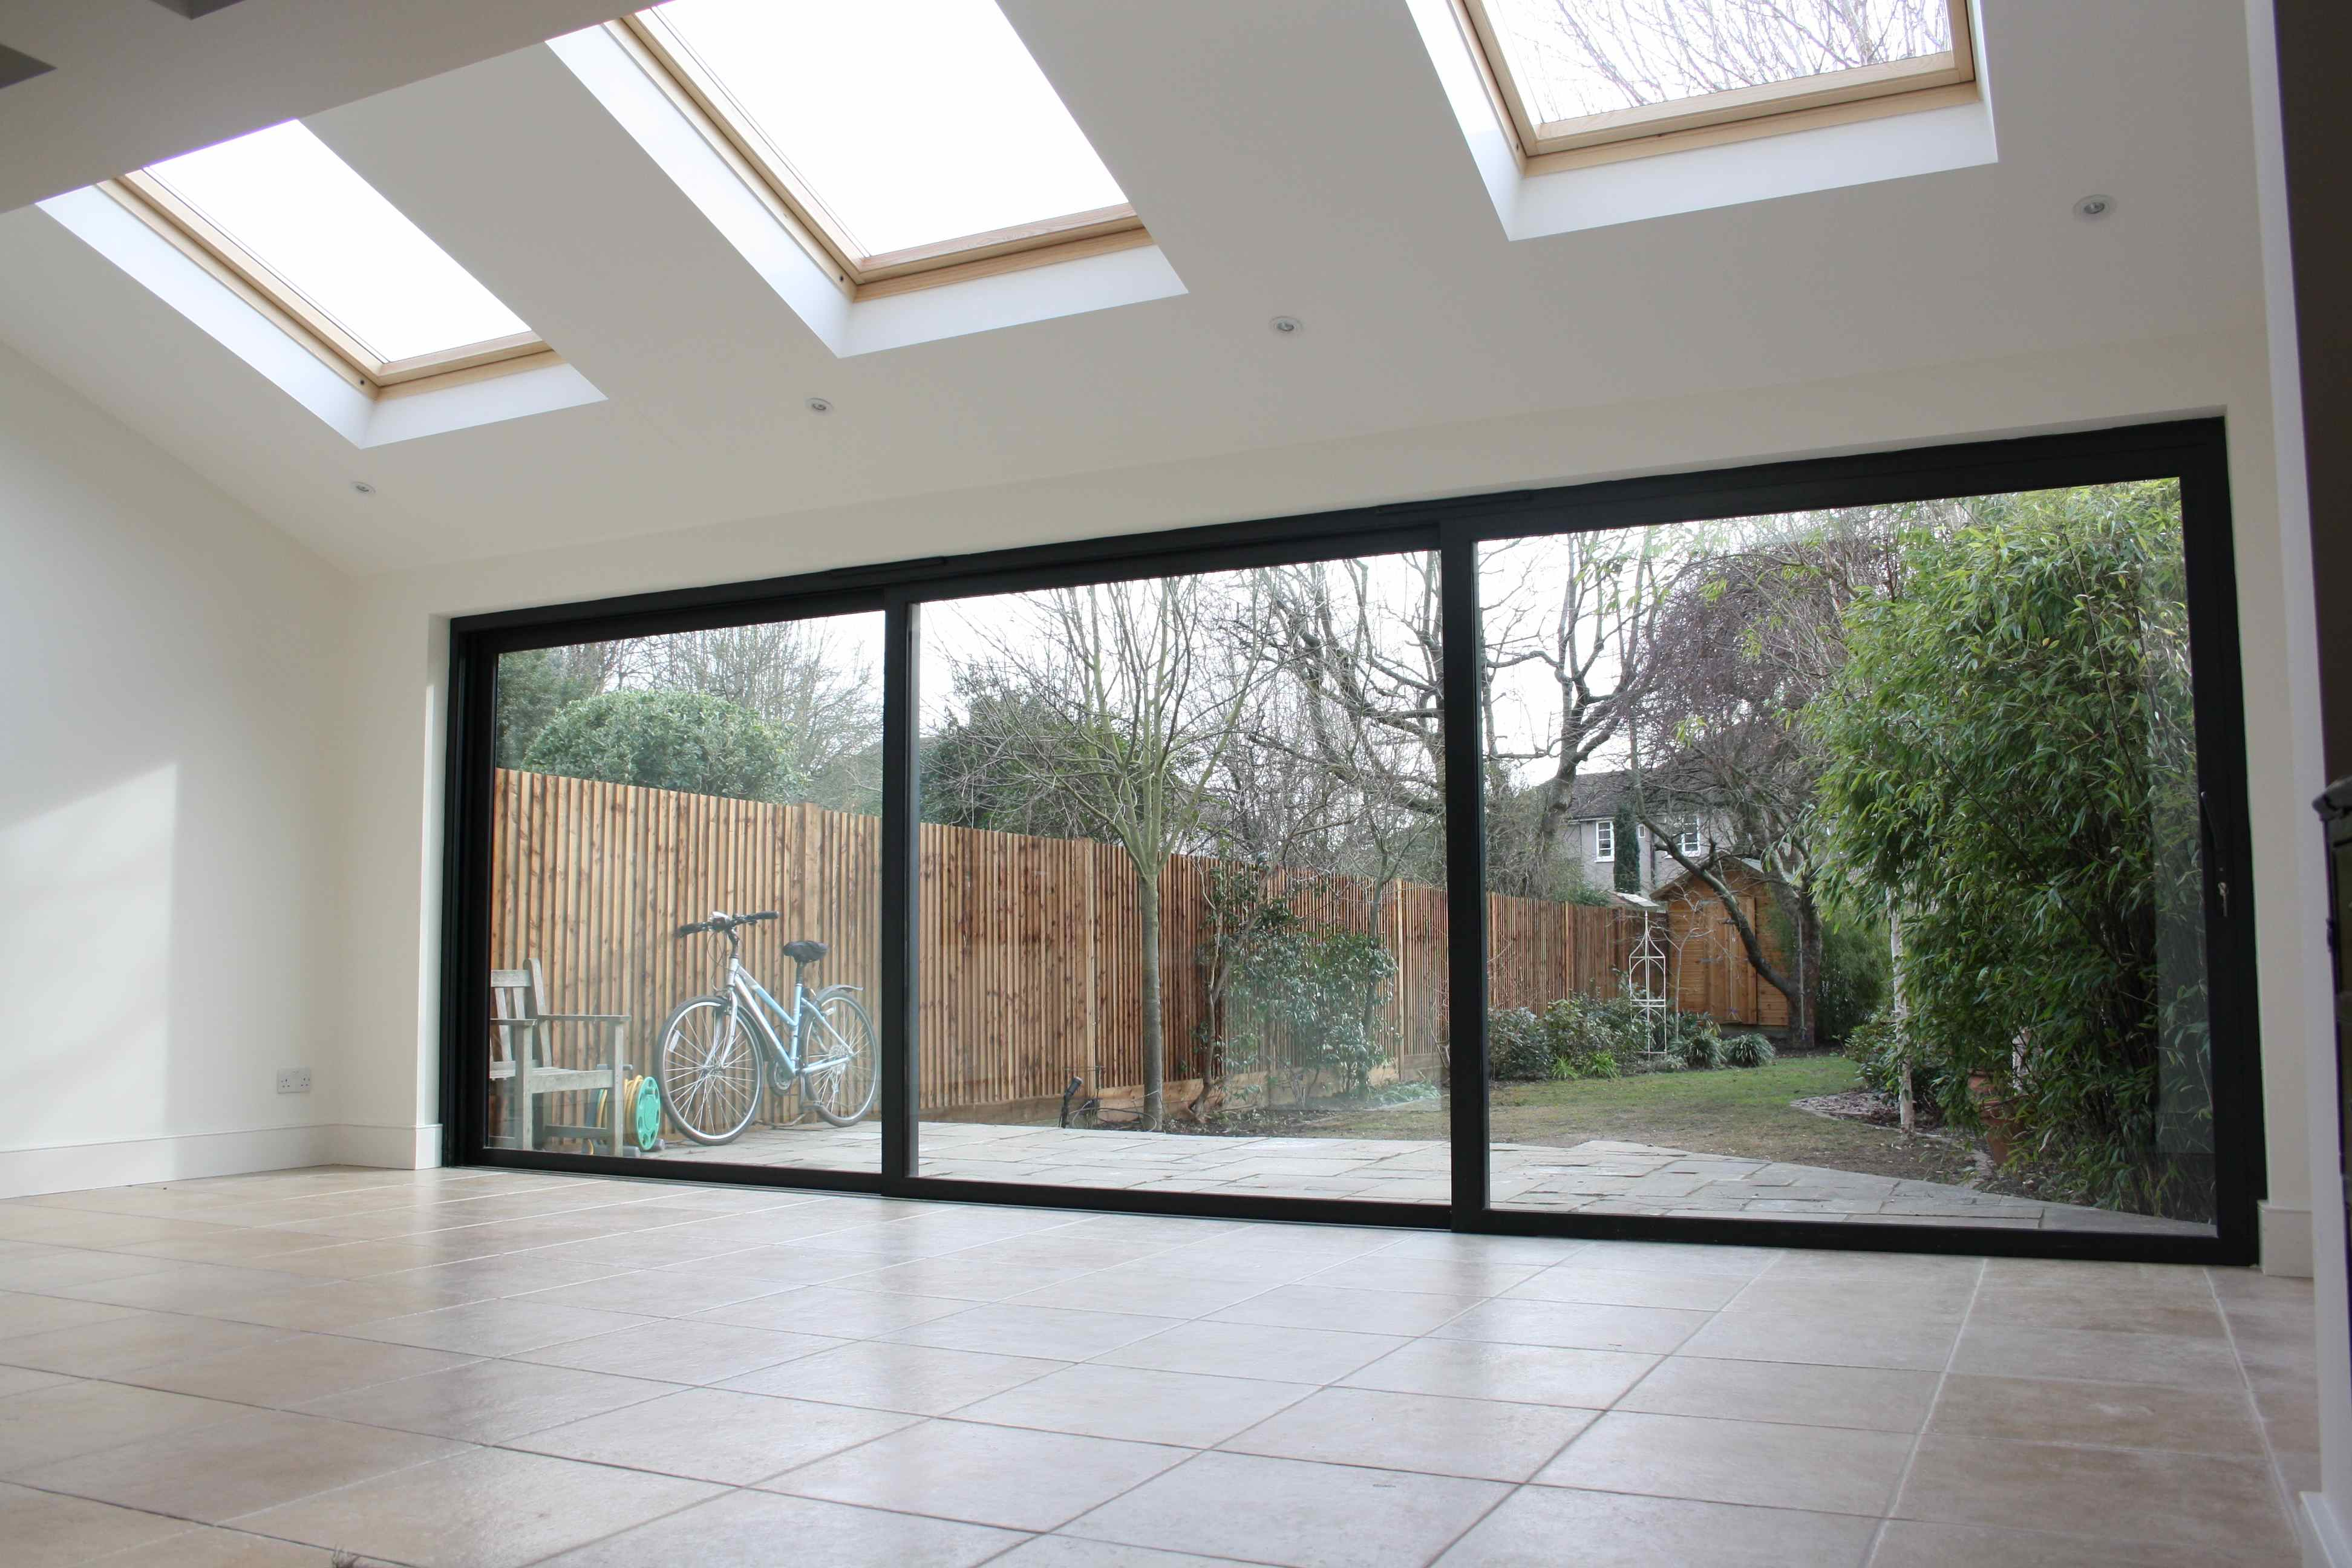 5 ways to heat your home extension this winter